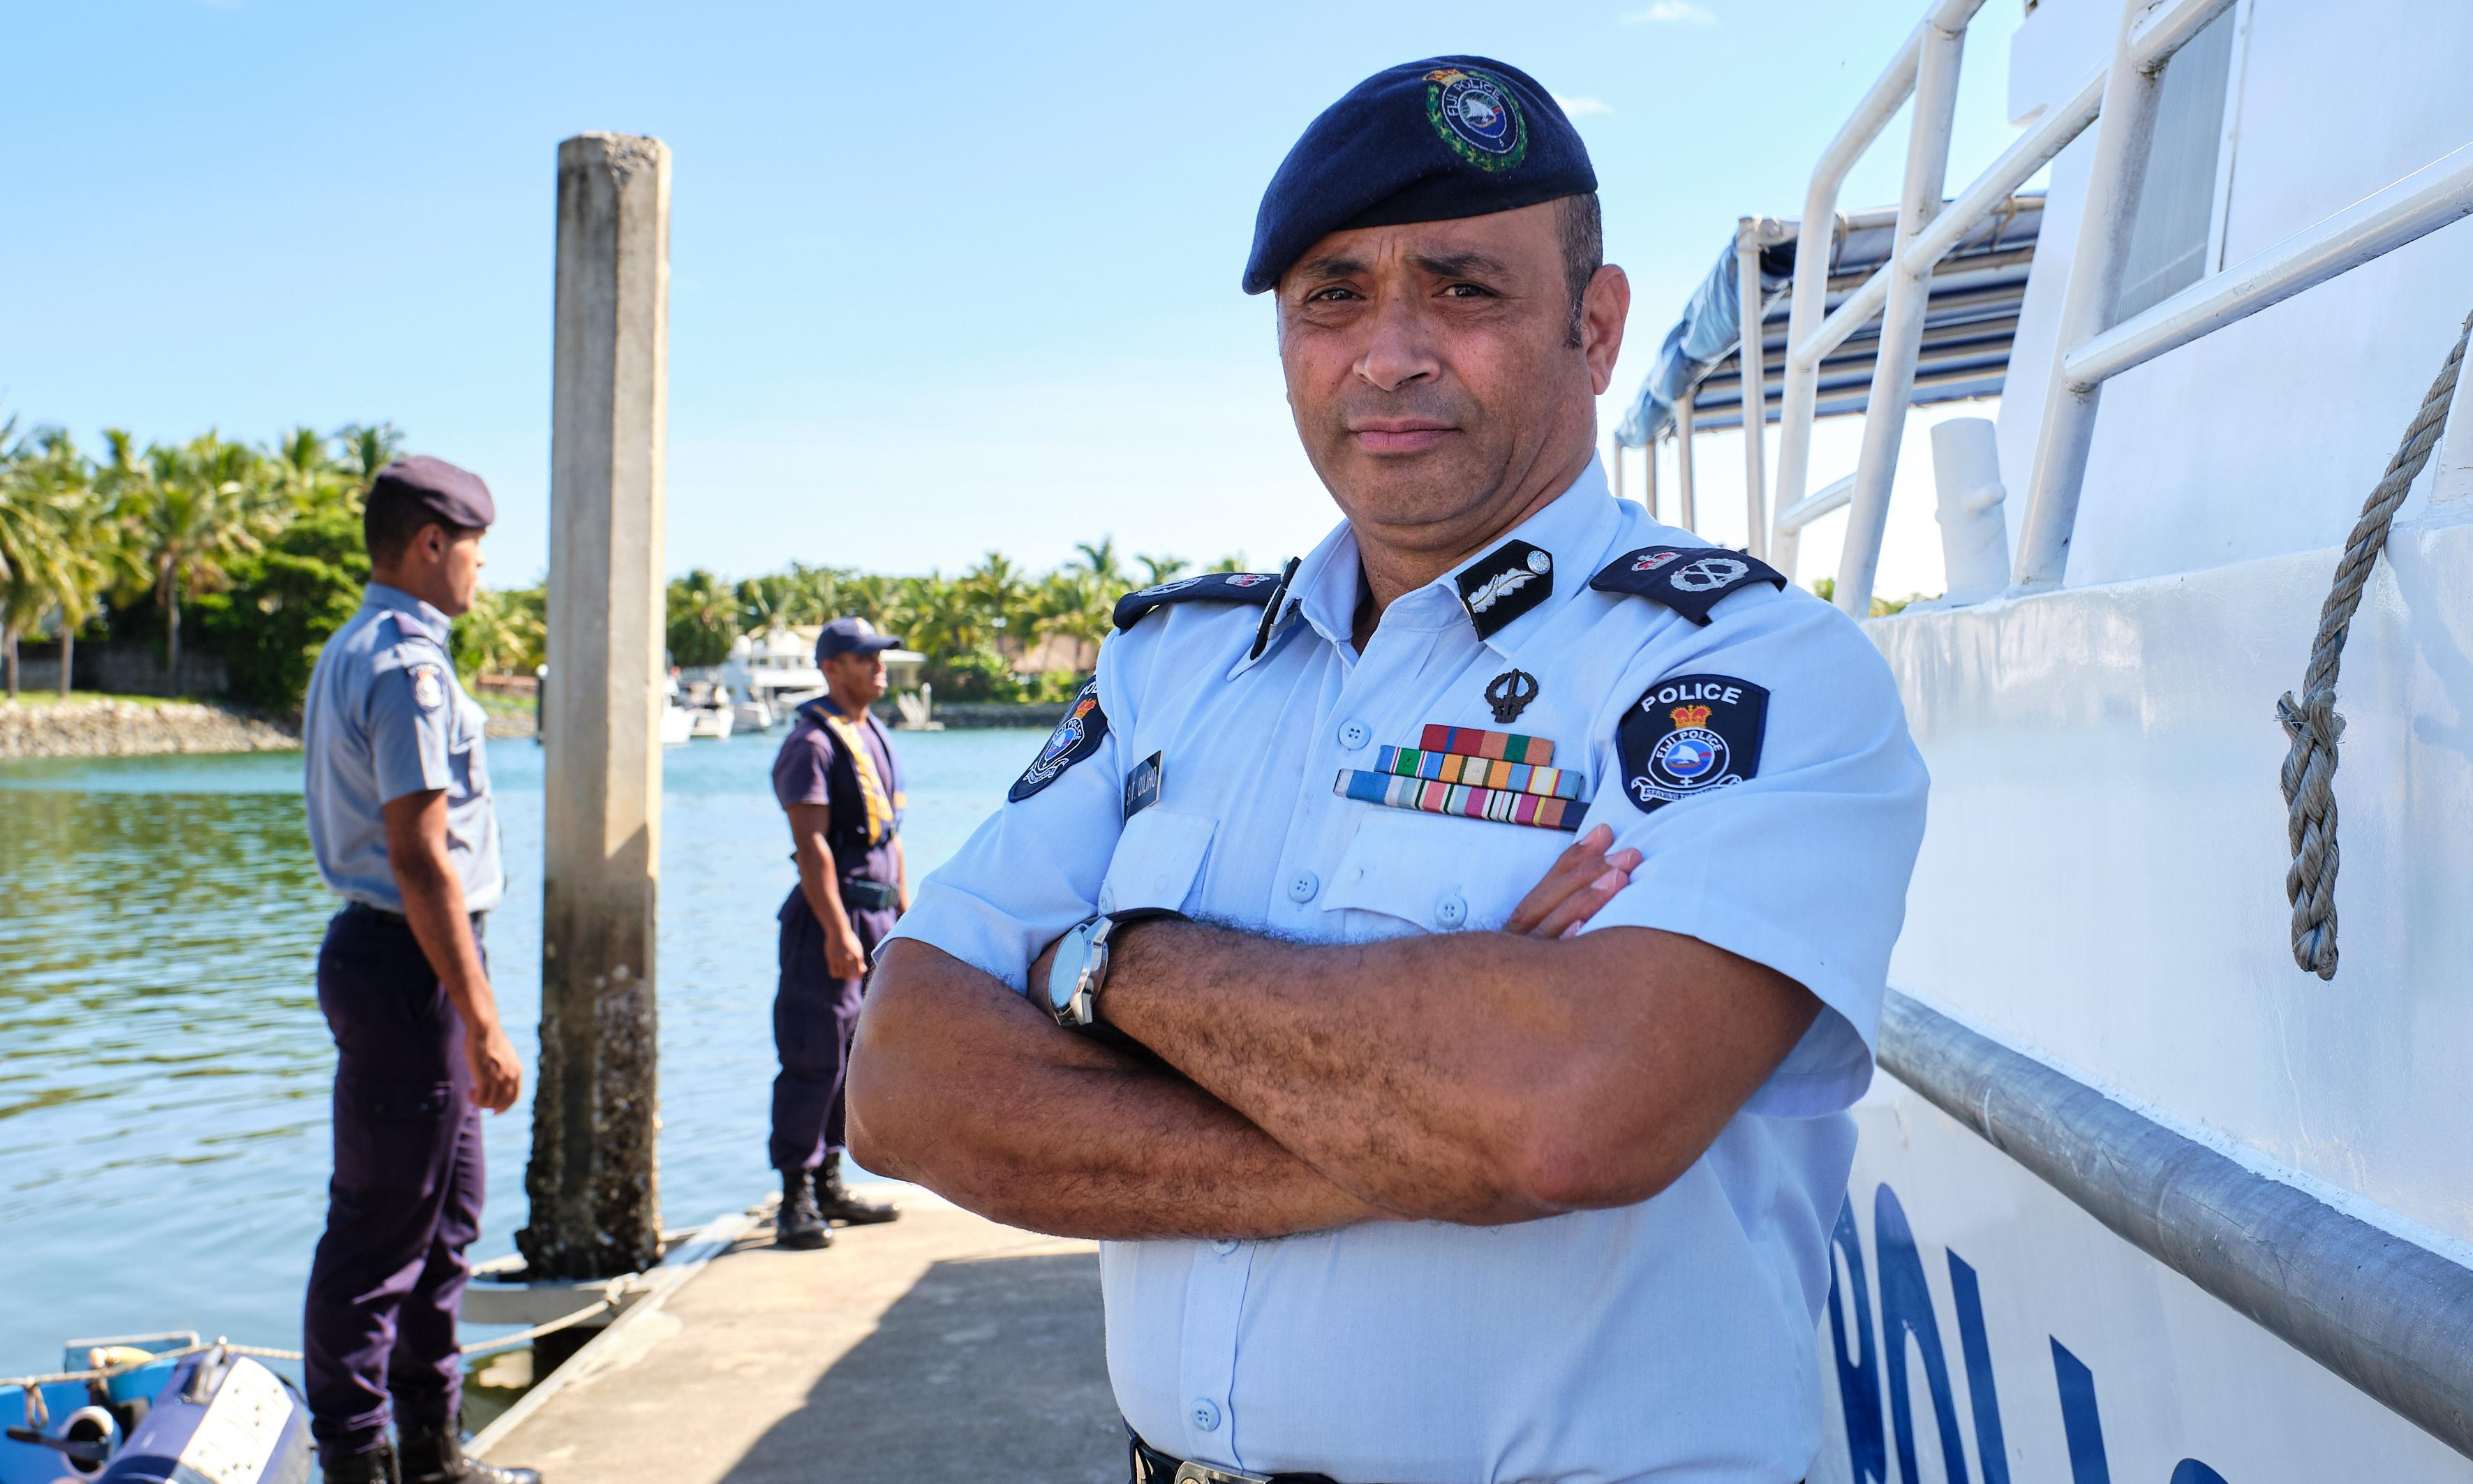 Cocaine used as washing powder: police struggle with Pacific drug influx